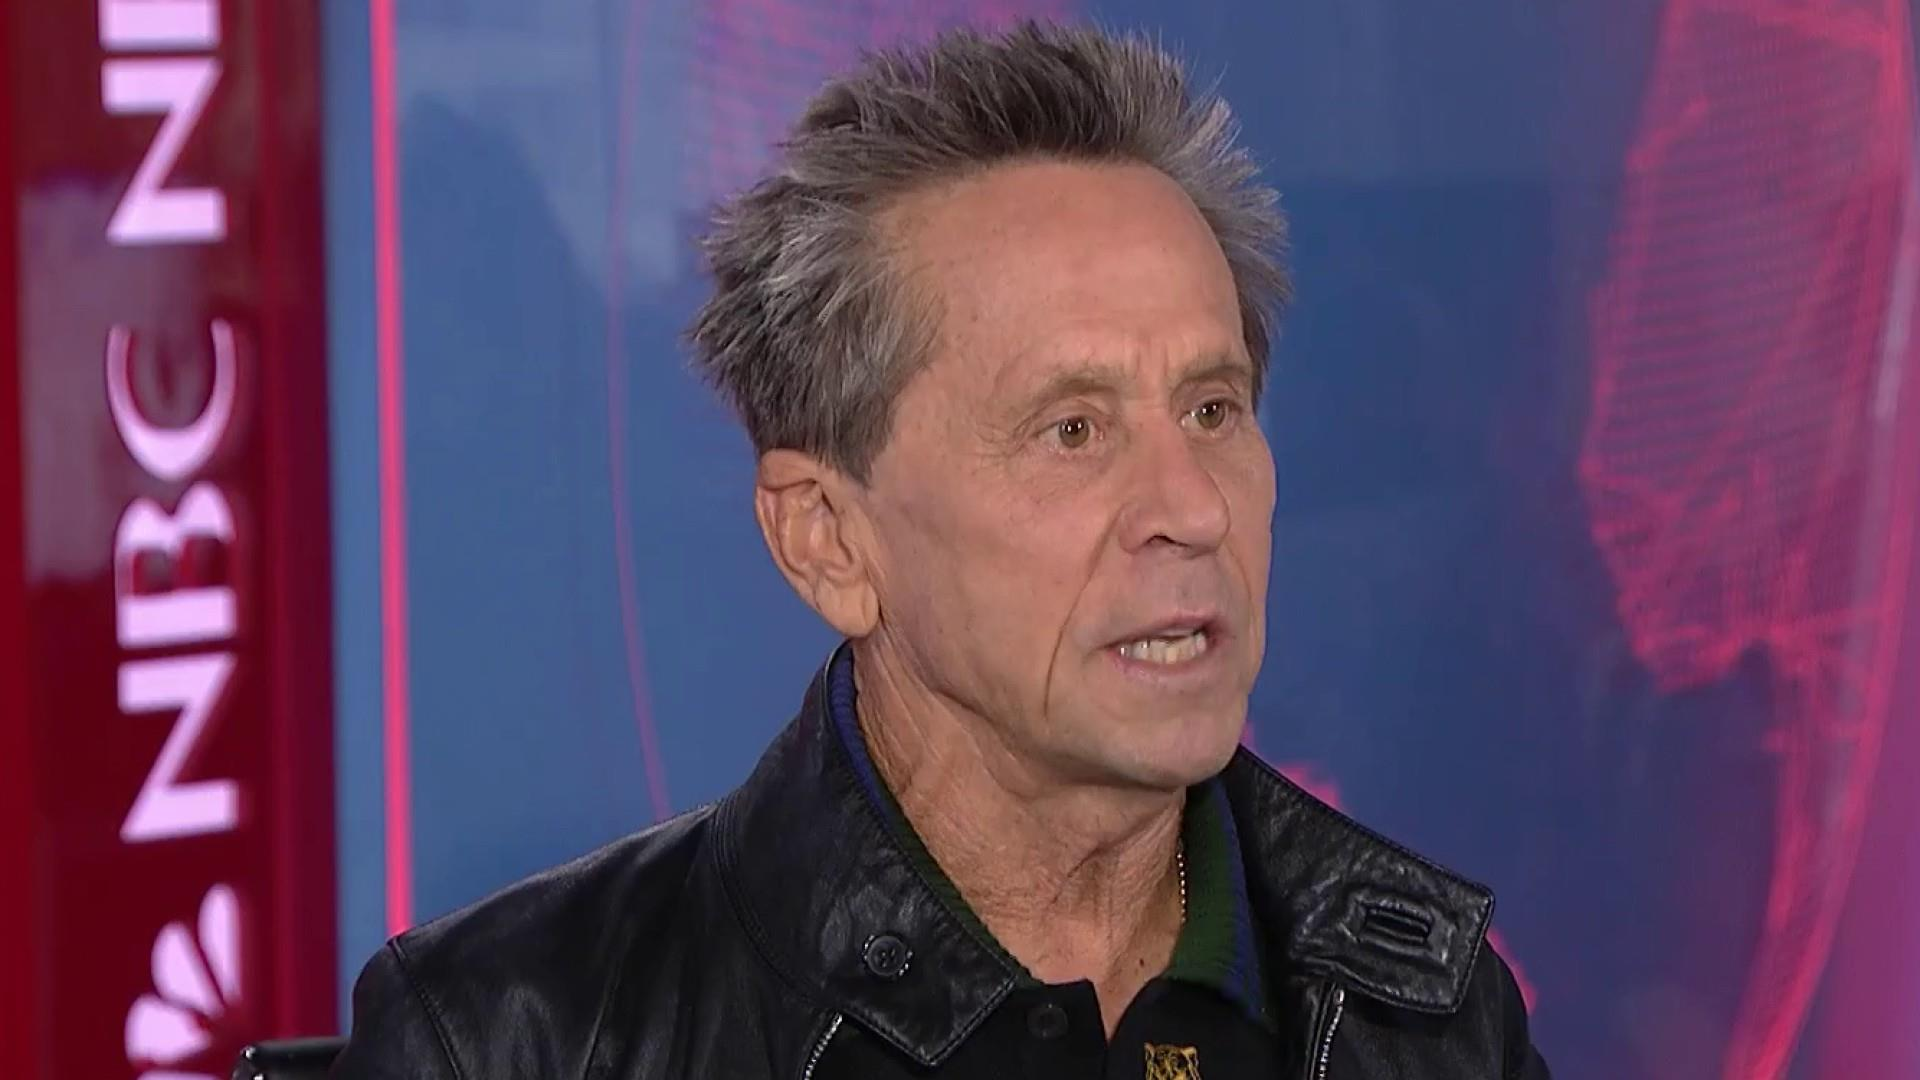 Hollywood producer Brian Grazer speaks on art of human connection in new book